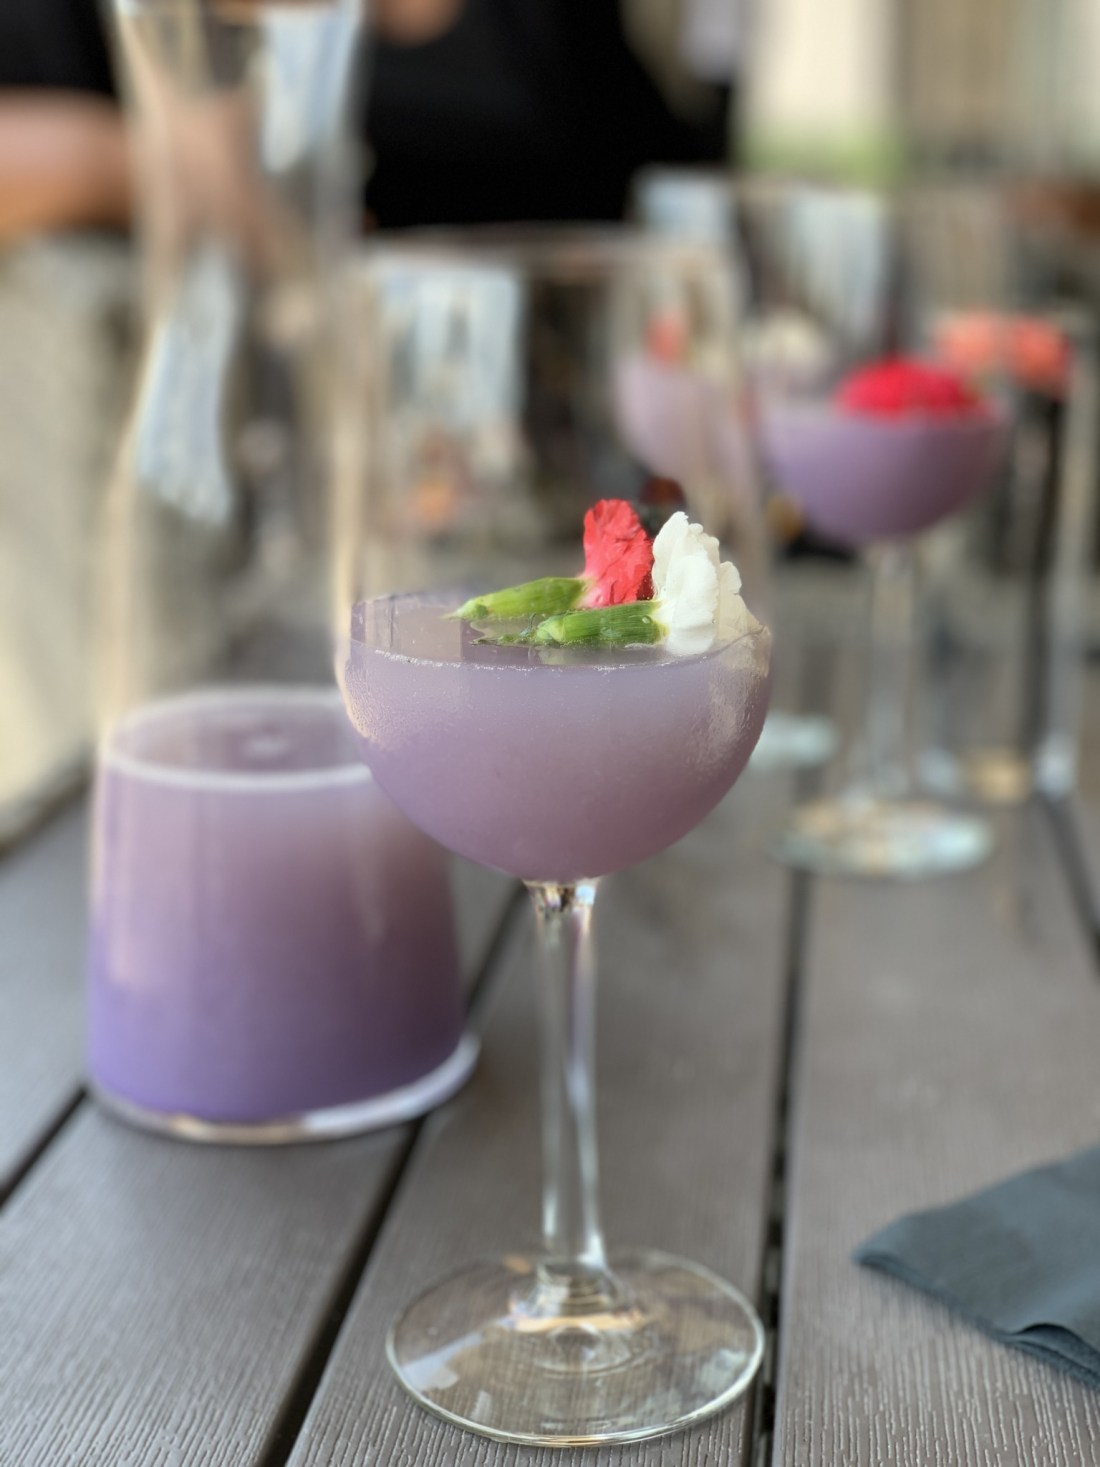 Purple mimosa and glass with carafe